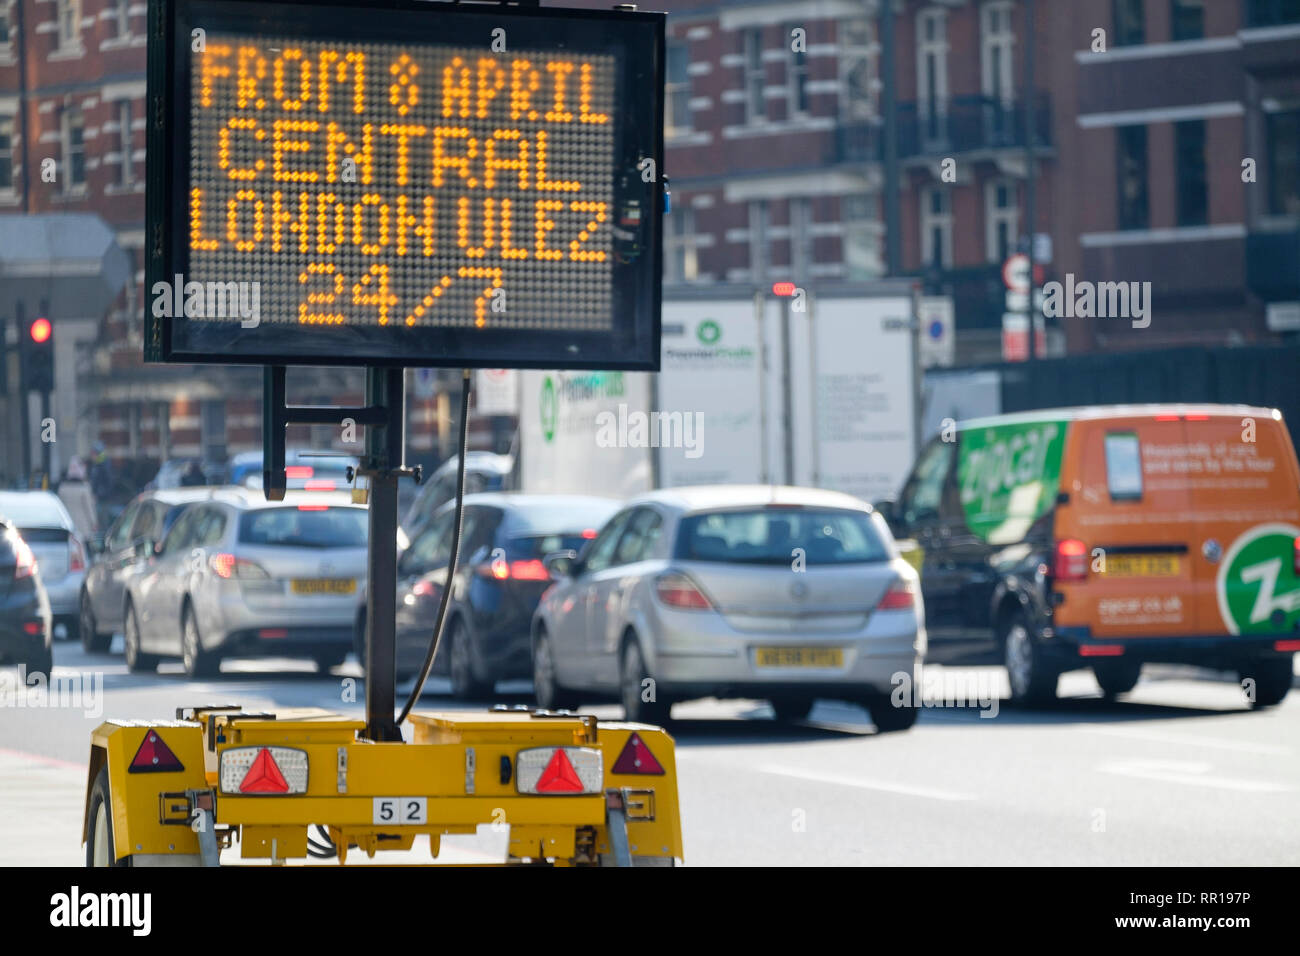 Matrix sign forewarning drivers of the incoming Central London Ultra Low Emission Zone taking effect from 8 April 2019 - Stock Image